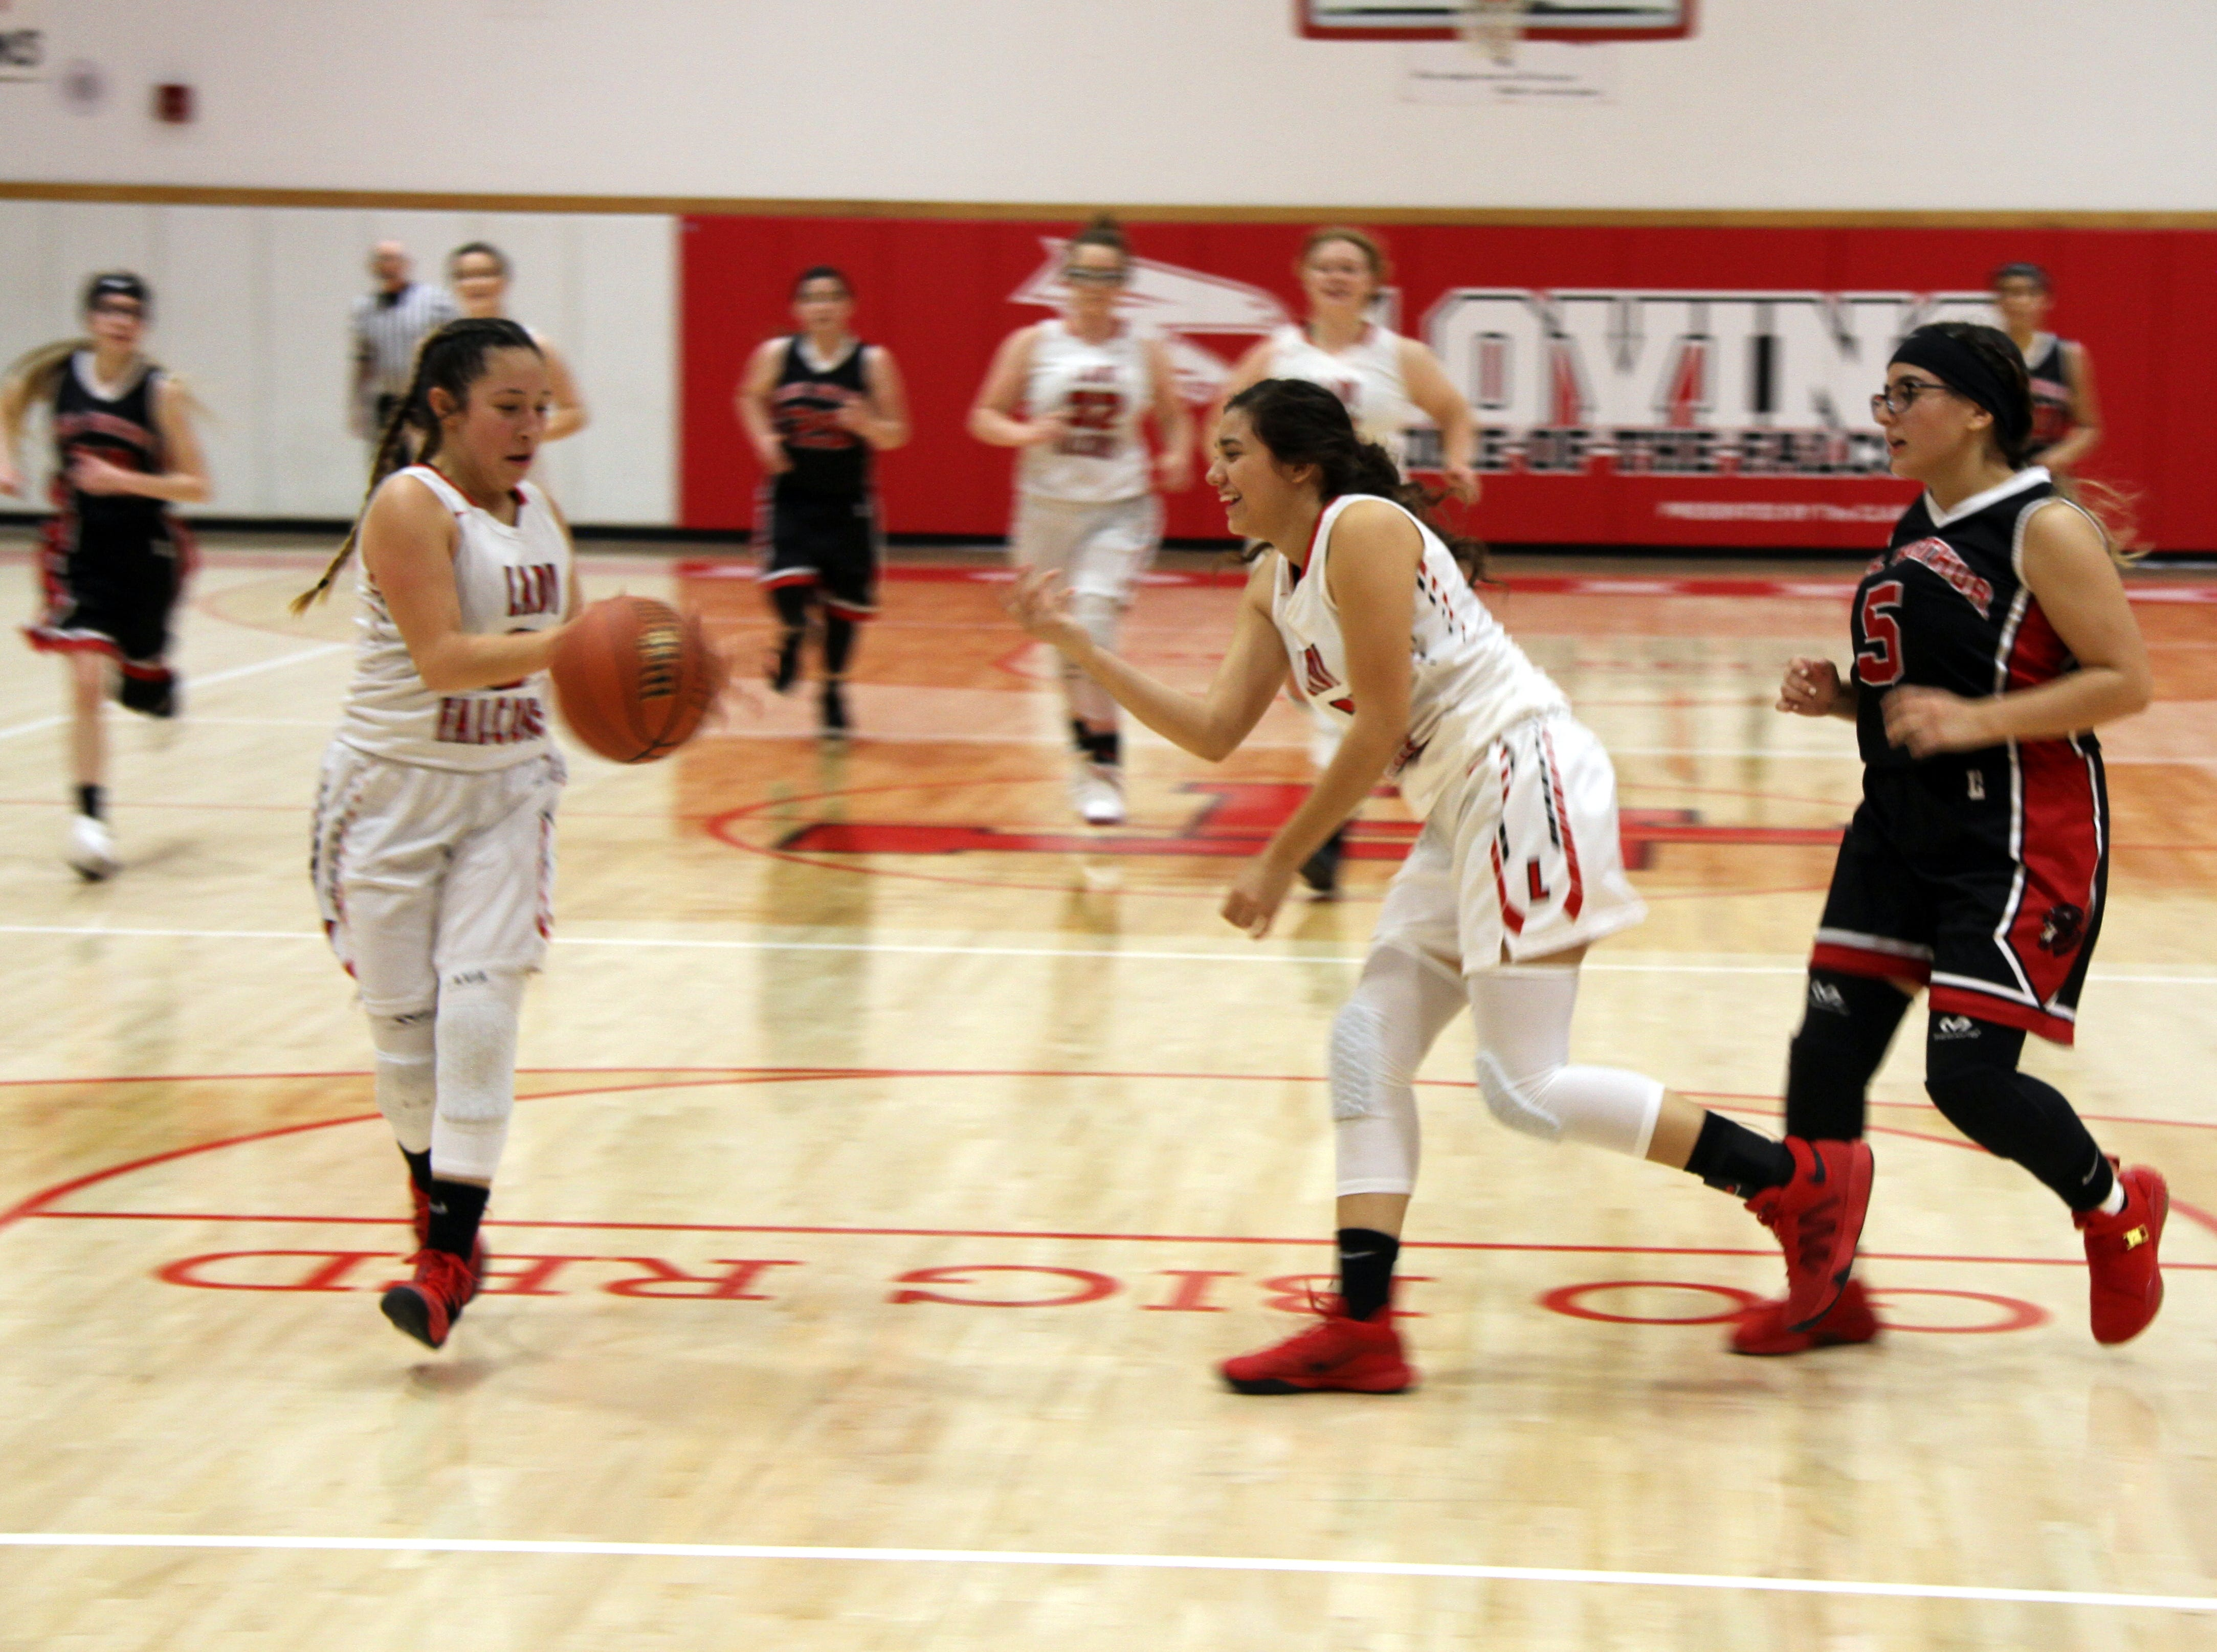 Frankie Hernandez (center) tosses the ball to Tiana Rodriguez (left) to complete a fastbreak during Tuesday's game against Lake Arthur. Loving won, 65-13.